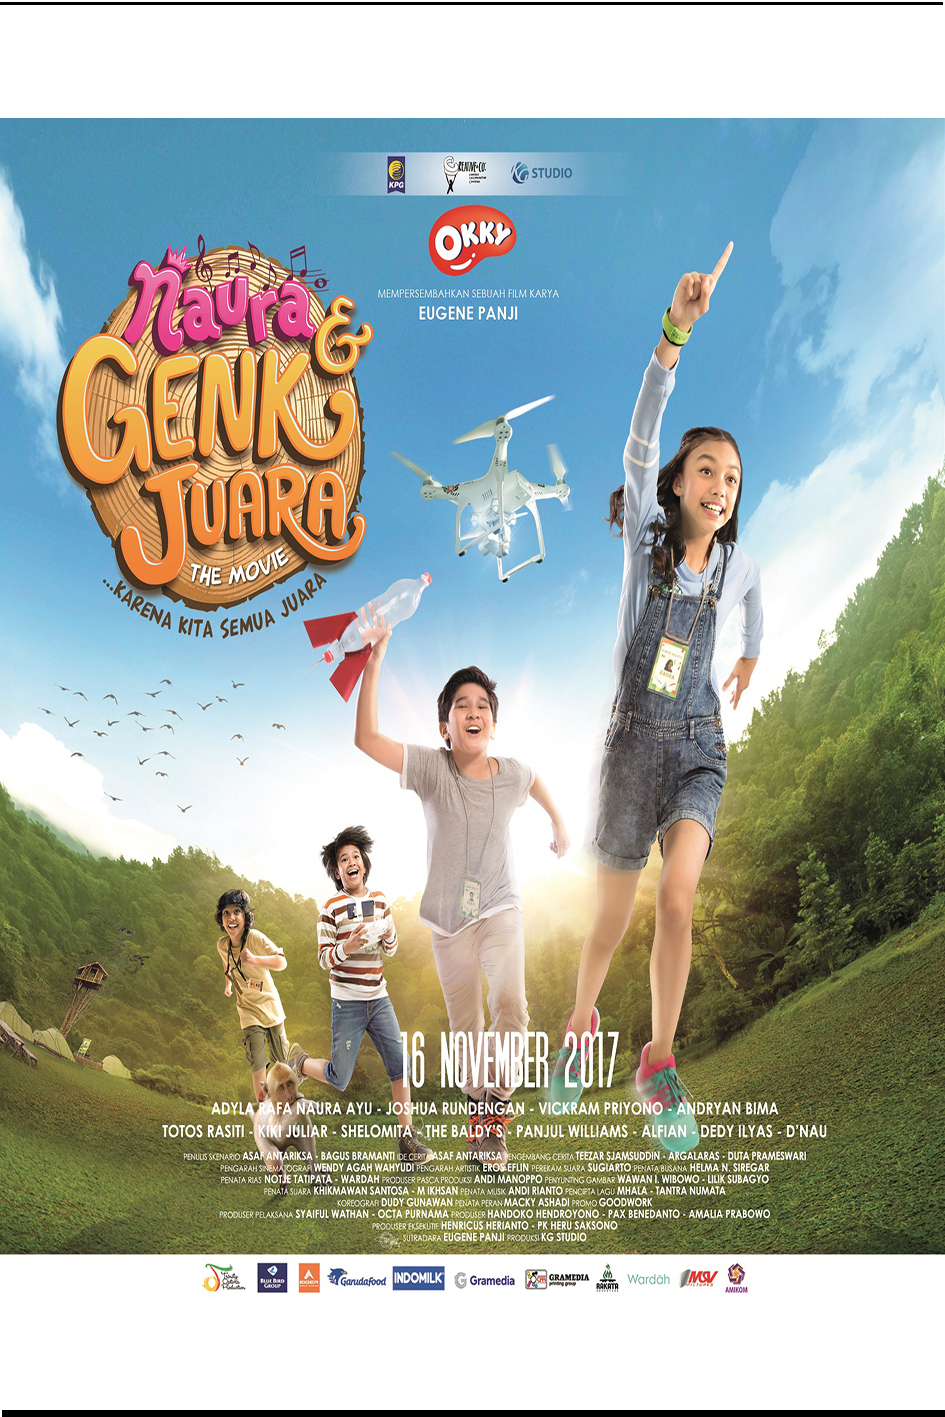 Naura & Genk Juara [2017 Indonesia Movie] Adventure, Drama, Musical